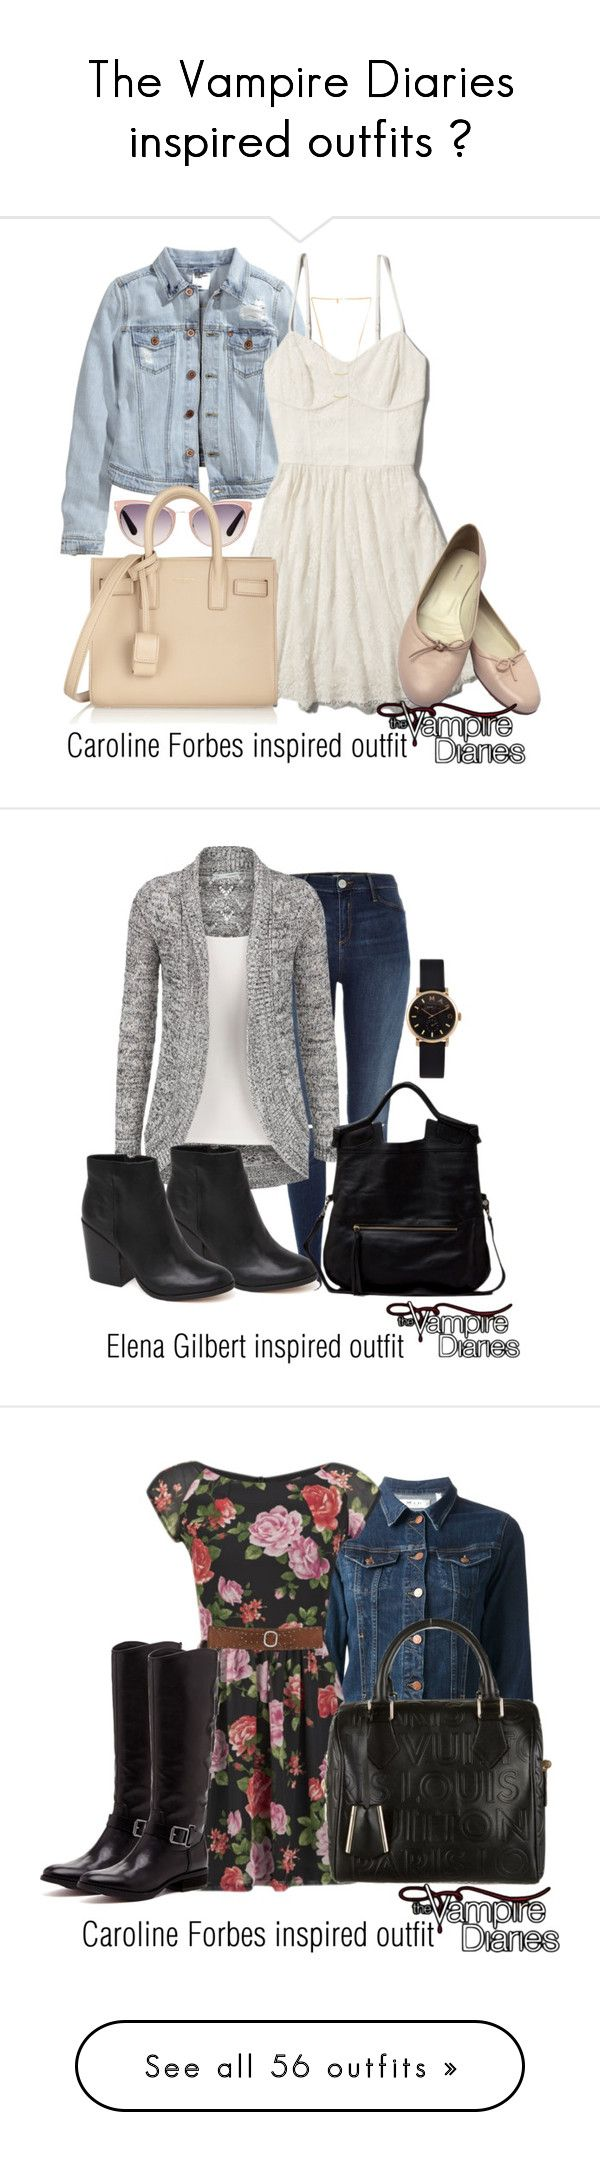 """The Vampire Diaries inspired outfits ♥"" by tvdsarahmichele ❤ liked on Polyvore featuring Tom Ford, H&M, Abercrombie & Fitch, Burberry, Yves Saint Laurent, Gorjana, River Island, Dolce Vita, Foley + Corinna and Marc by Marc Jacobs"